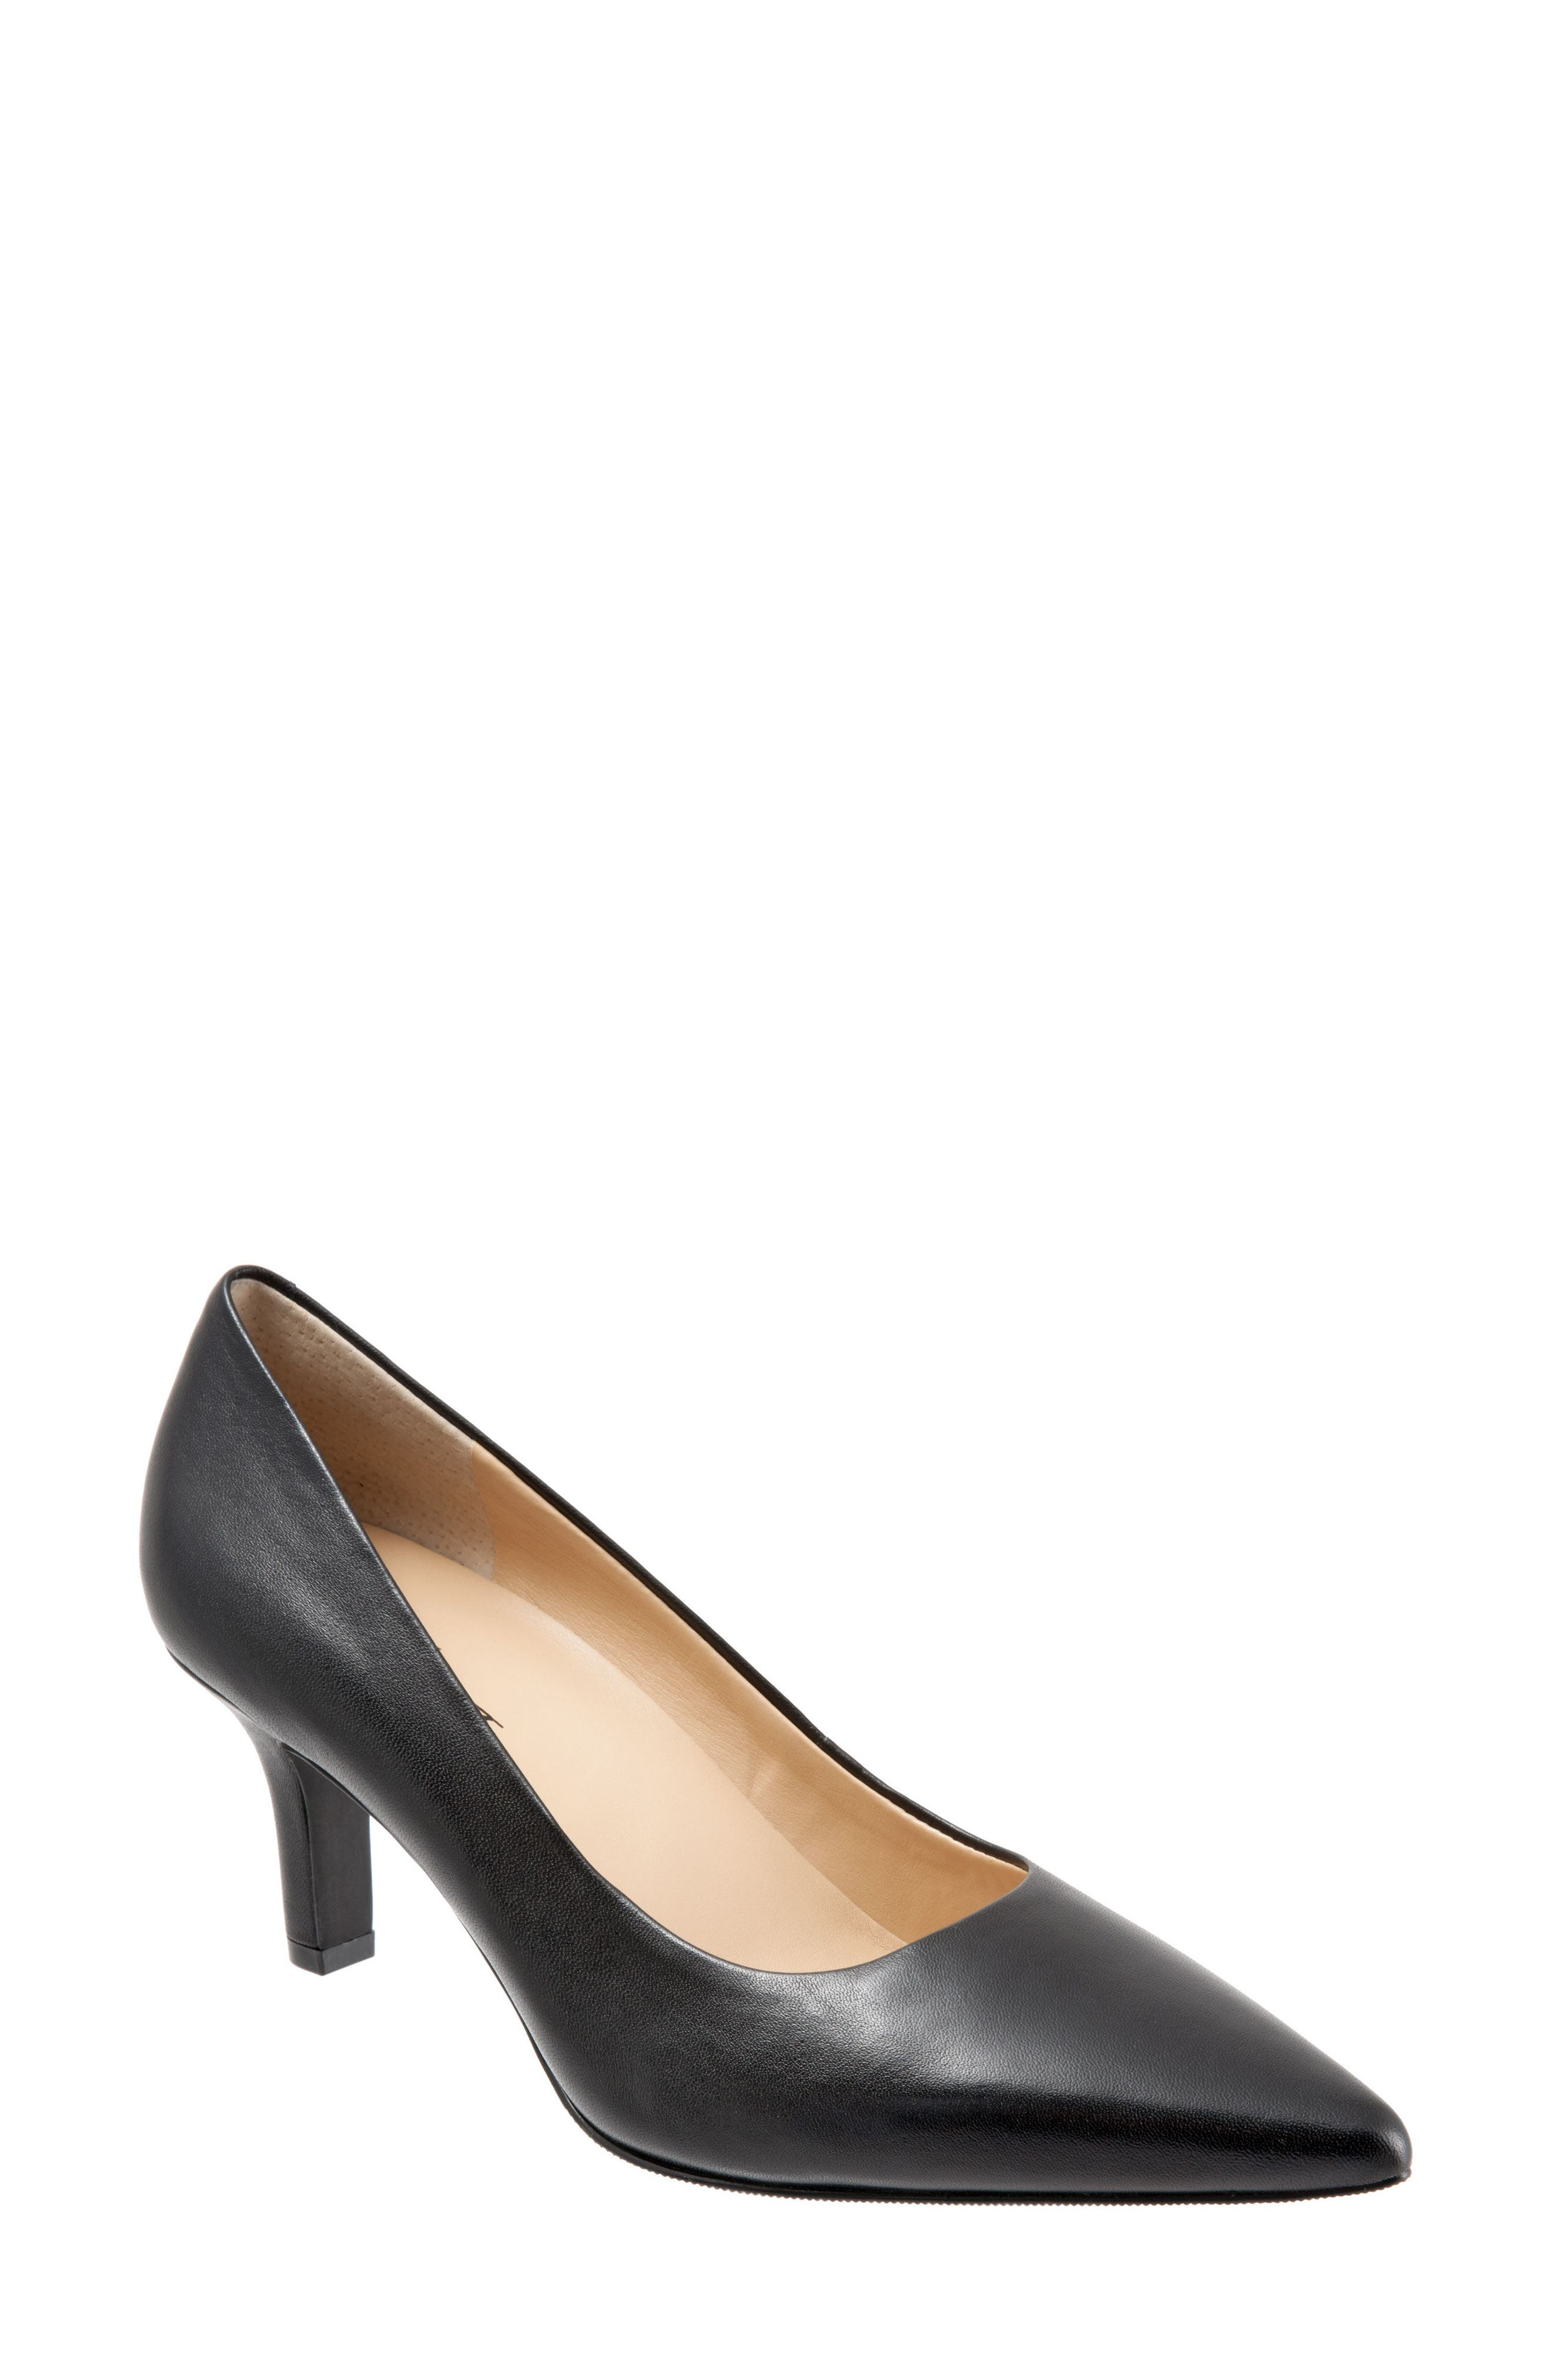 Noelle Pointy Toe Pump,                         Main,                         color, BLACK LEATHER